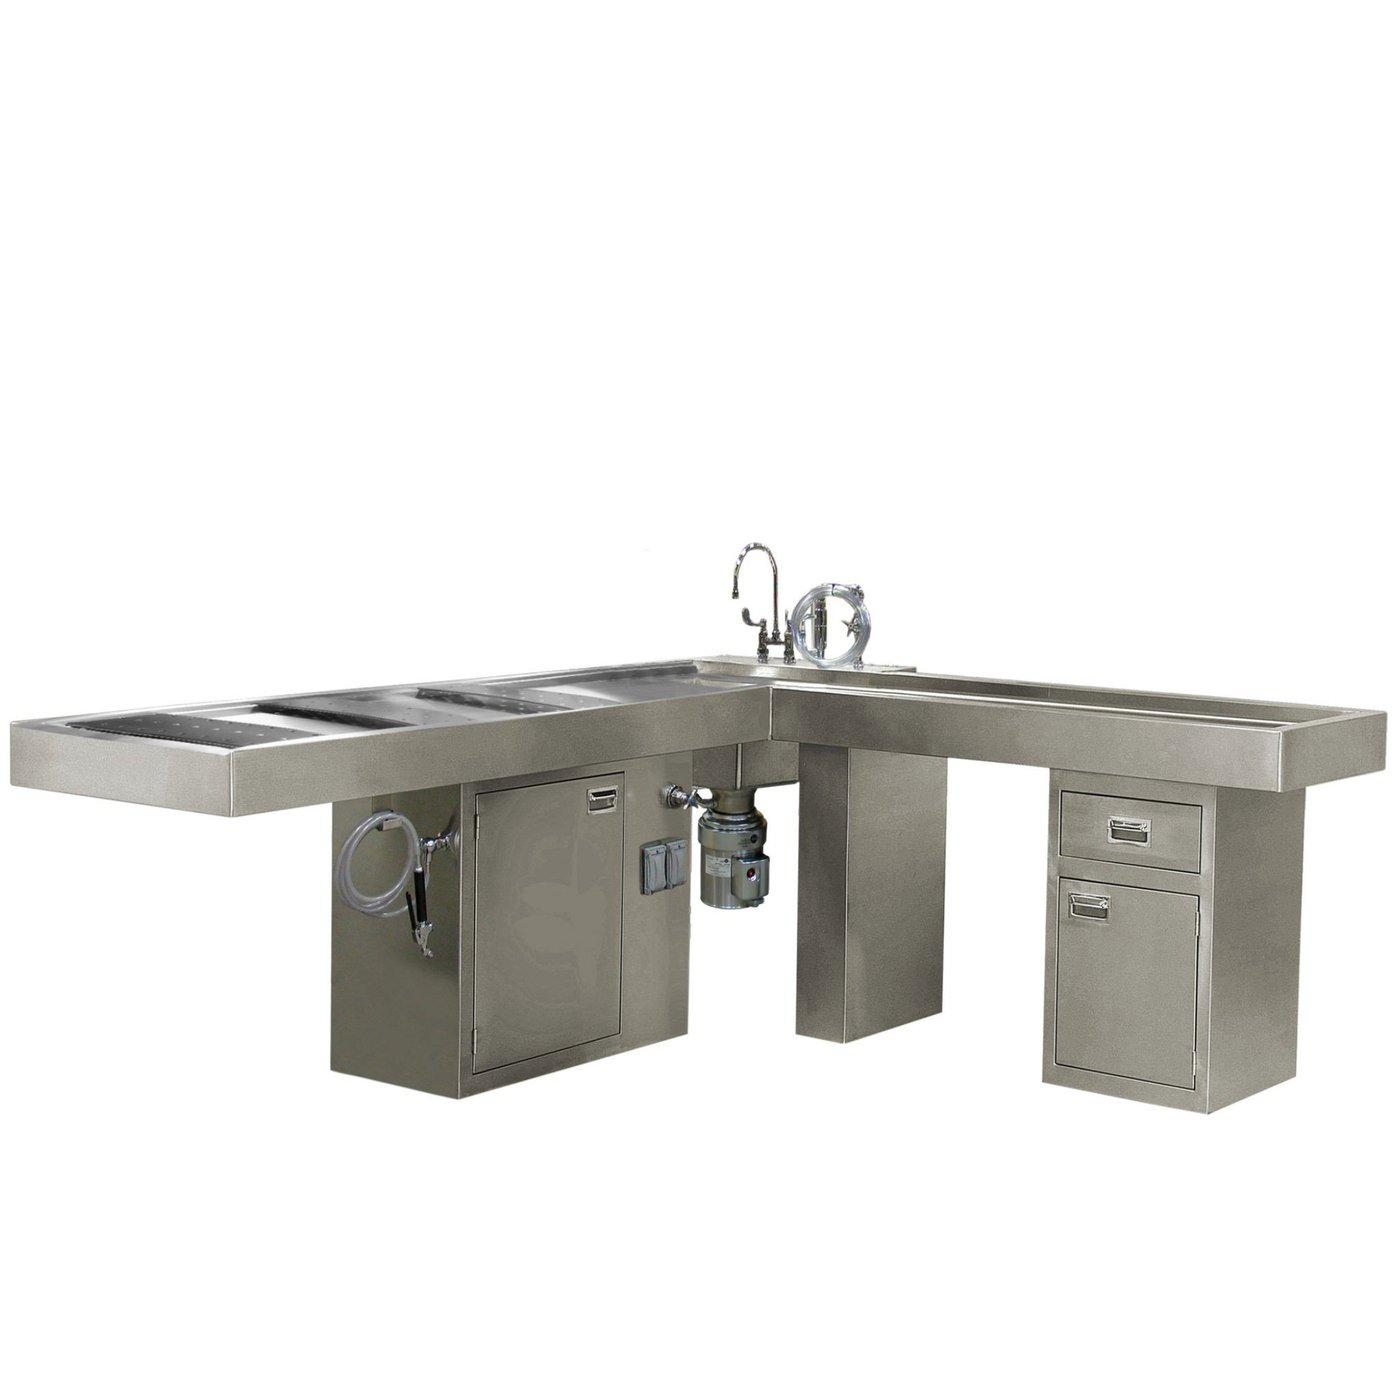 Pedestal Autopsy Tables Mortech Manufacturing Company